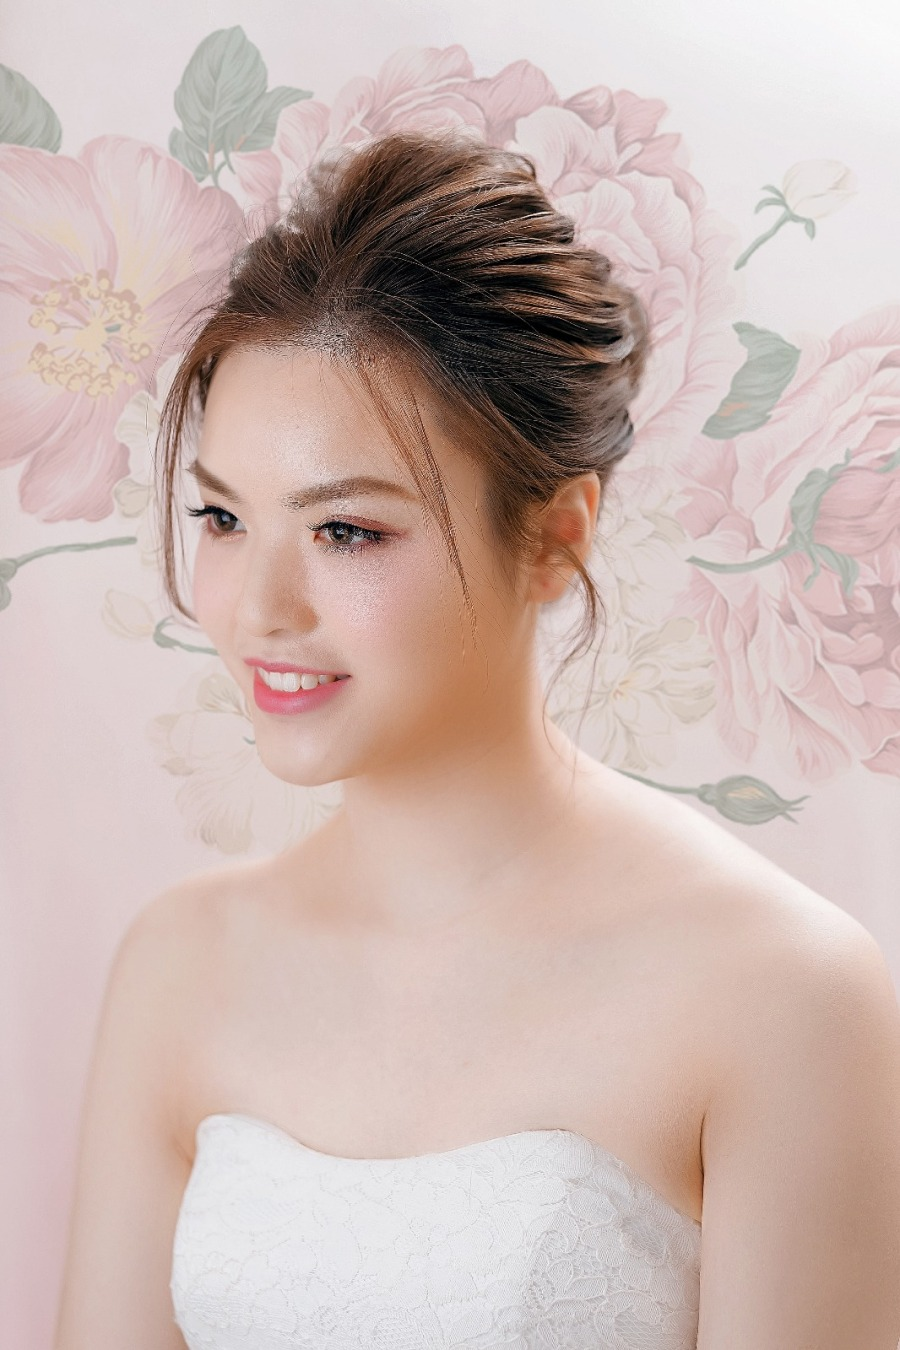 新妝化妝師 wedding bridal makeup hair hk Fiona7